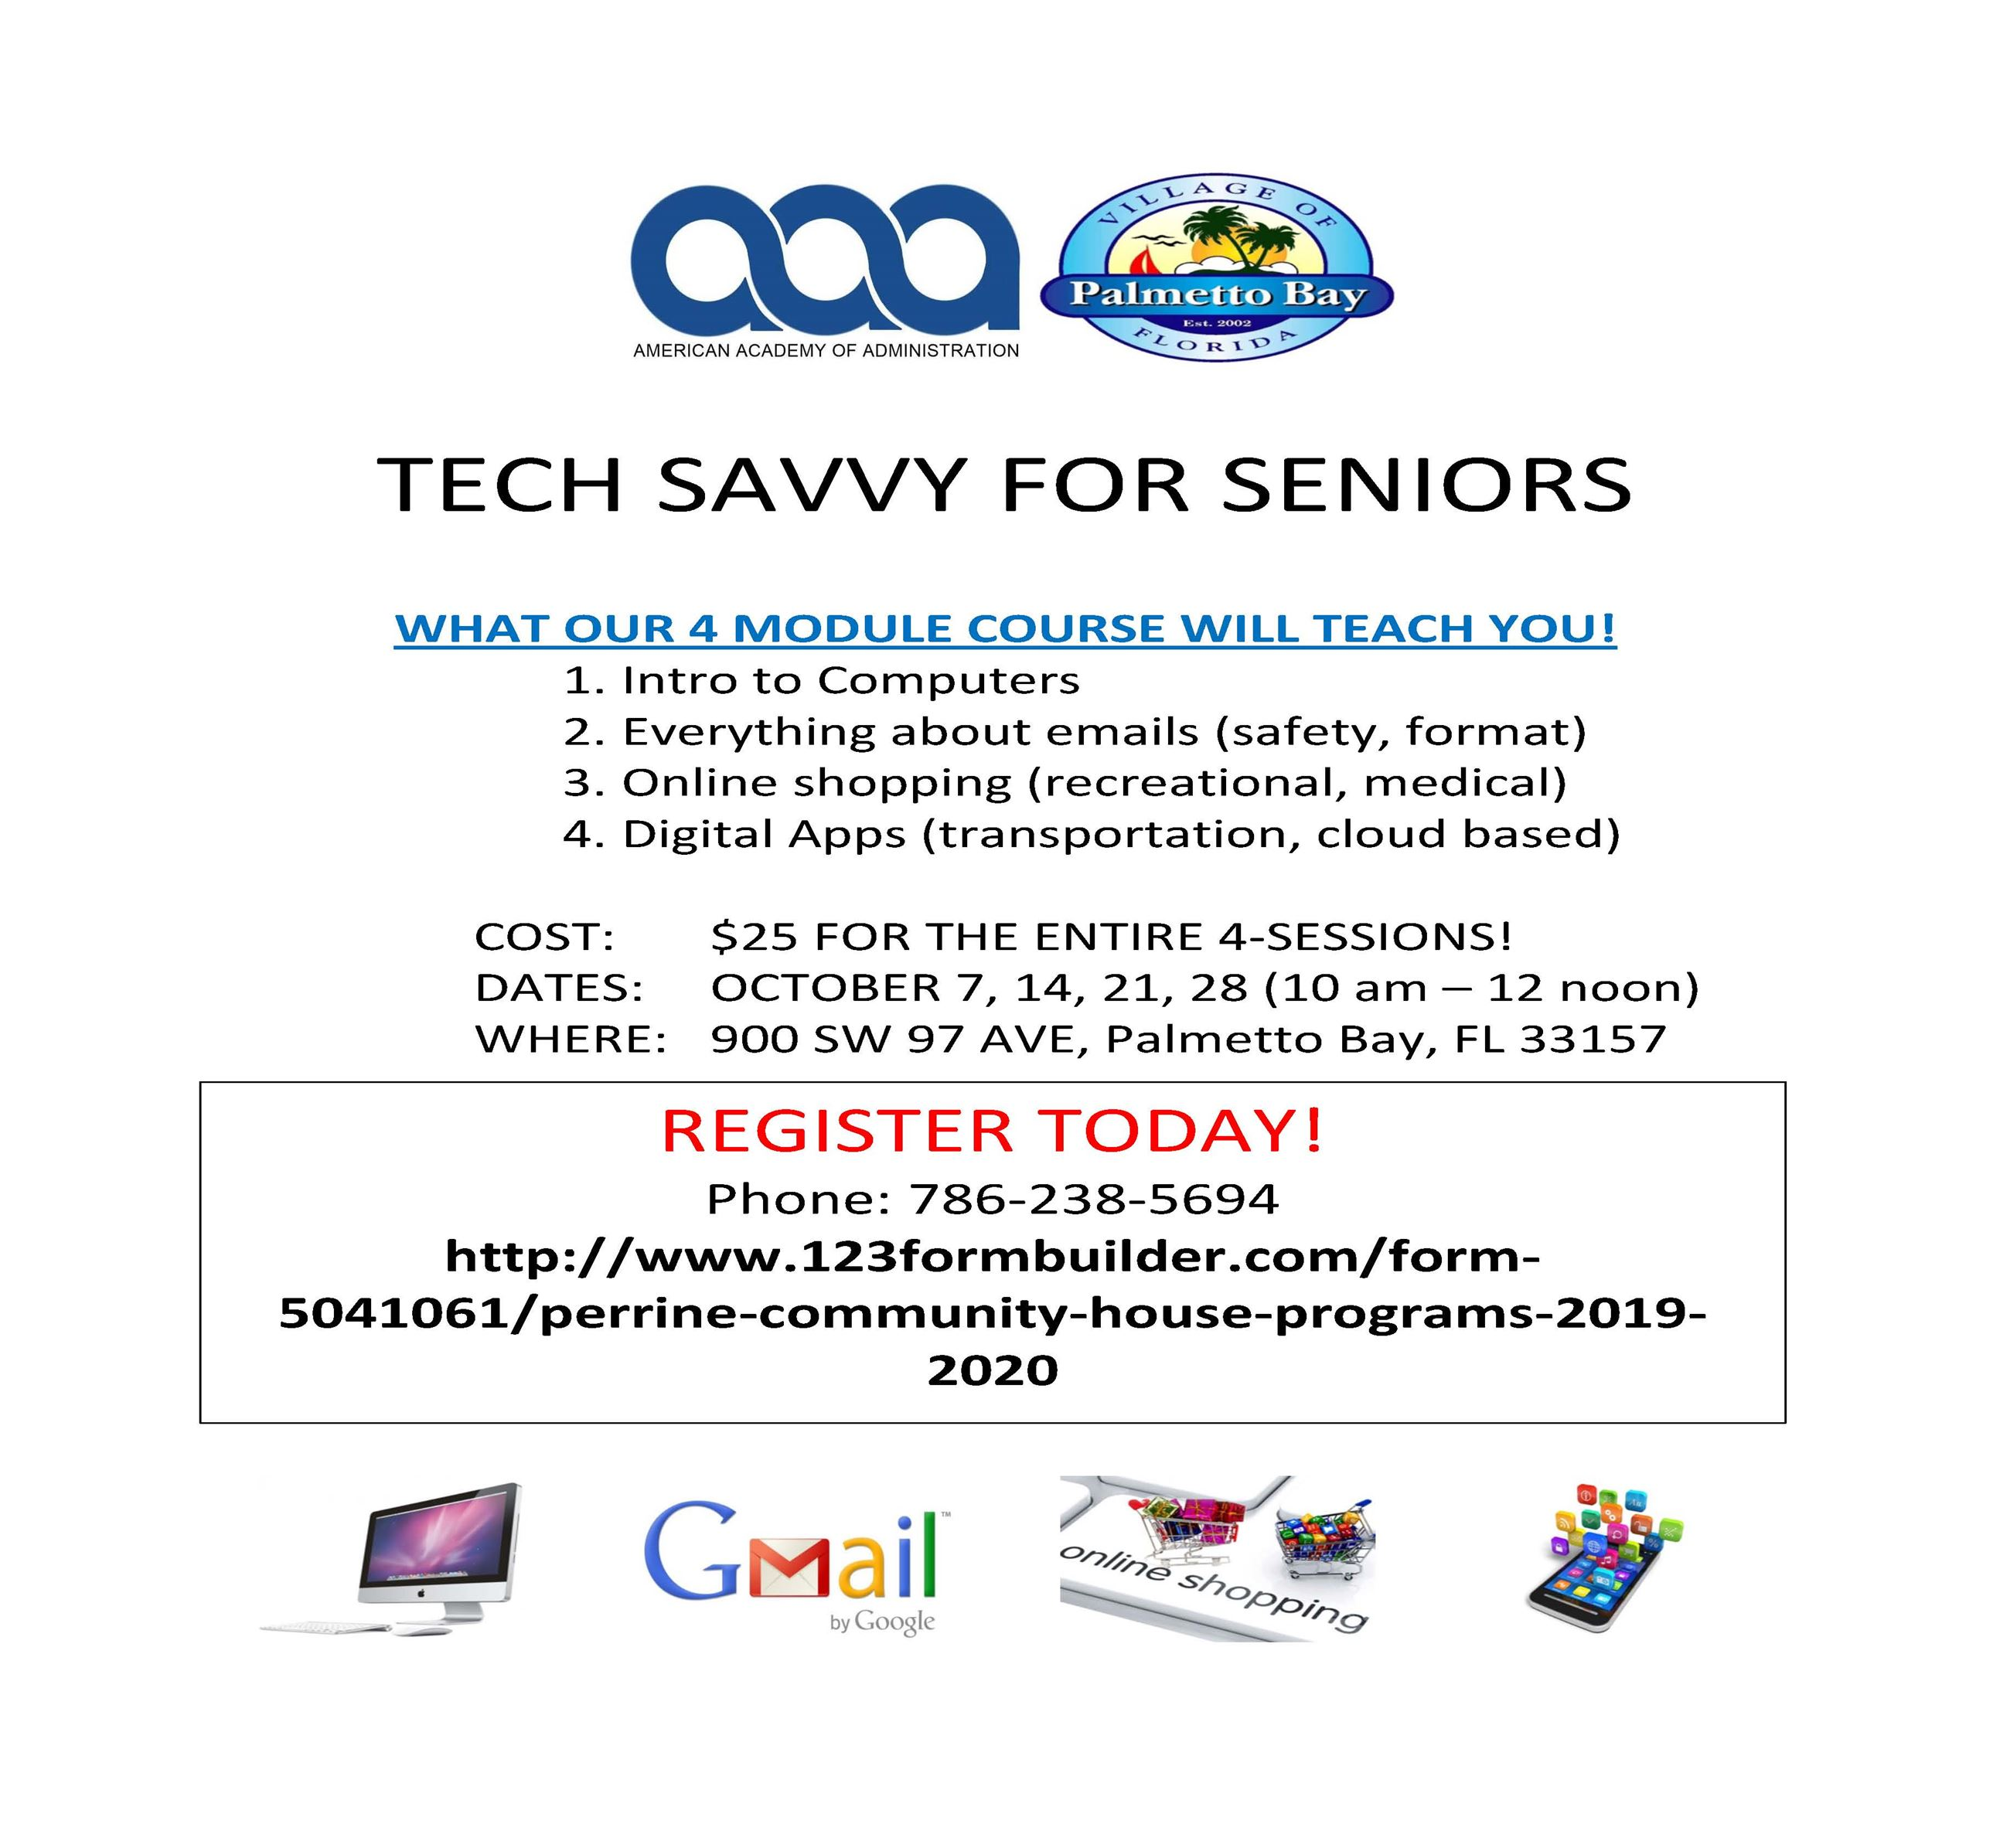 TECH SAVVY FOR SENIORS-October 7, 14, 21 & 28 at Perrine Community House from 10a-12p